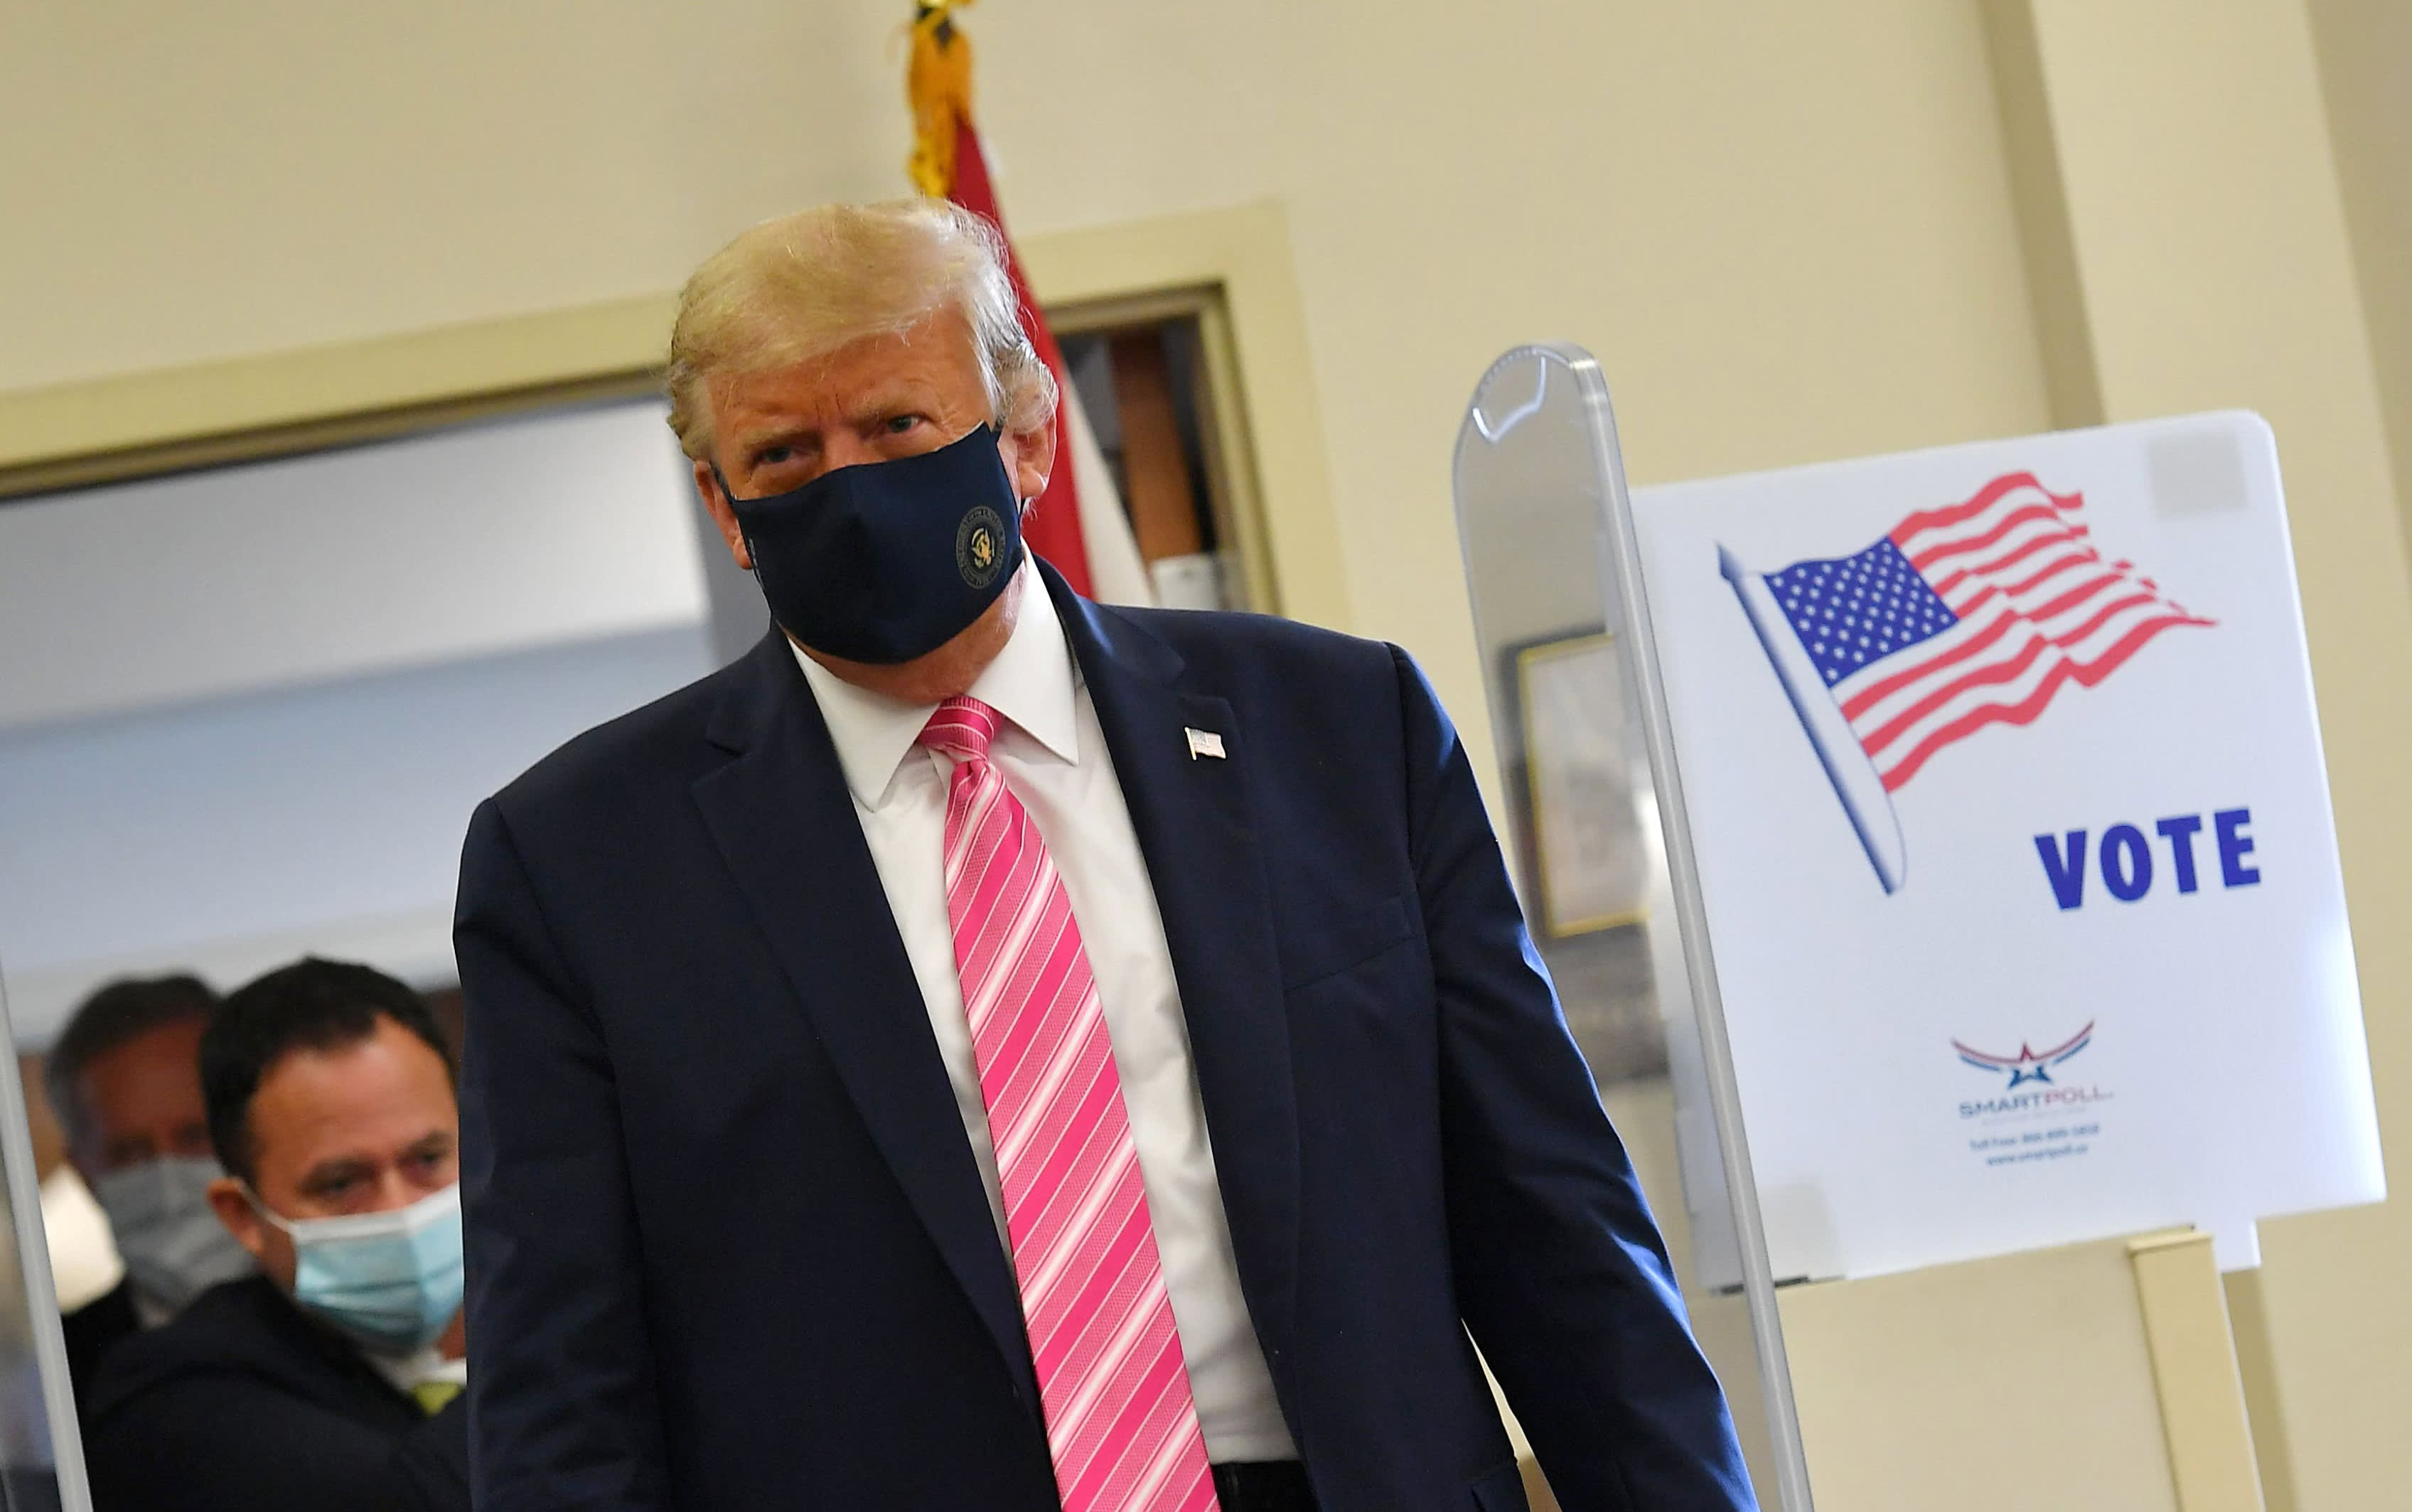 Trump votes early in Florida as 2020 campaign enters final days